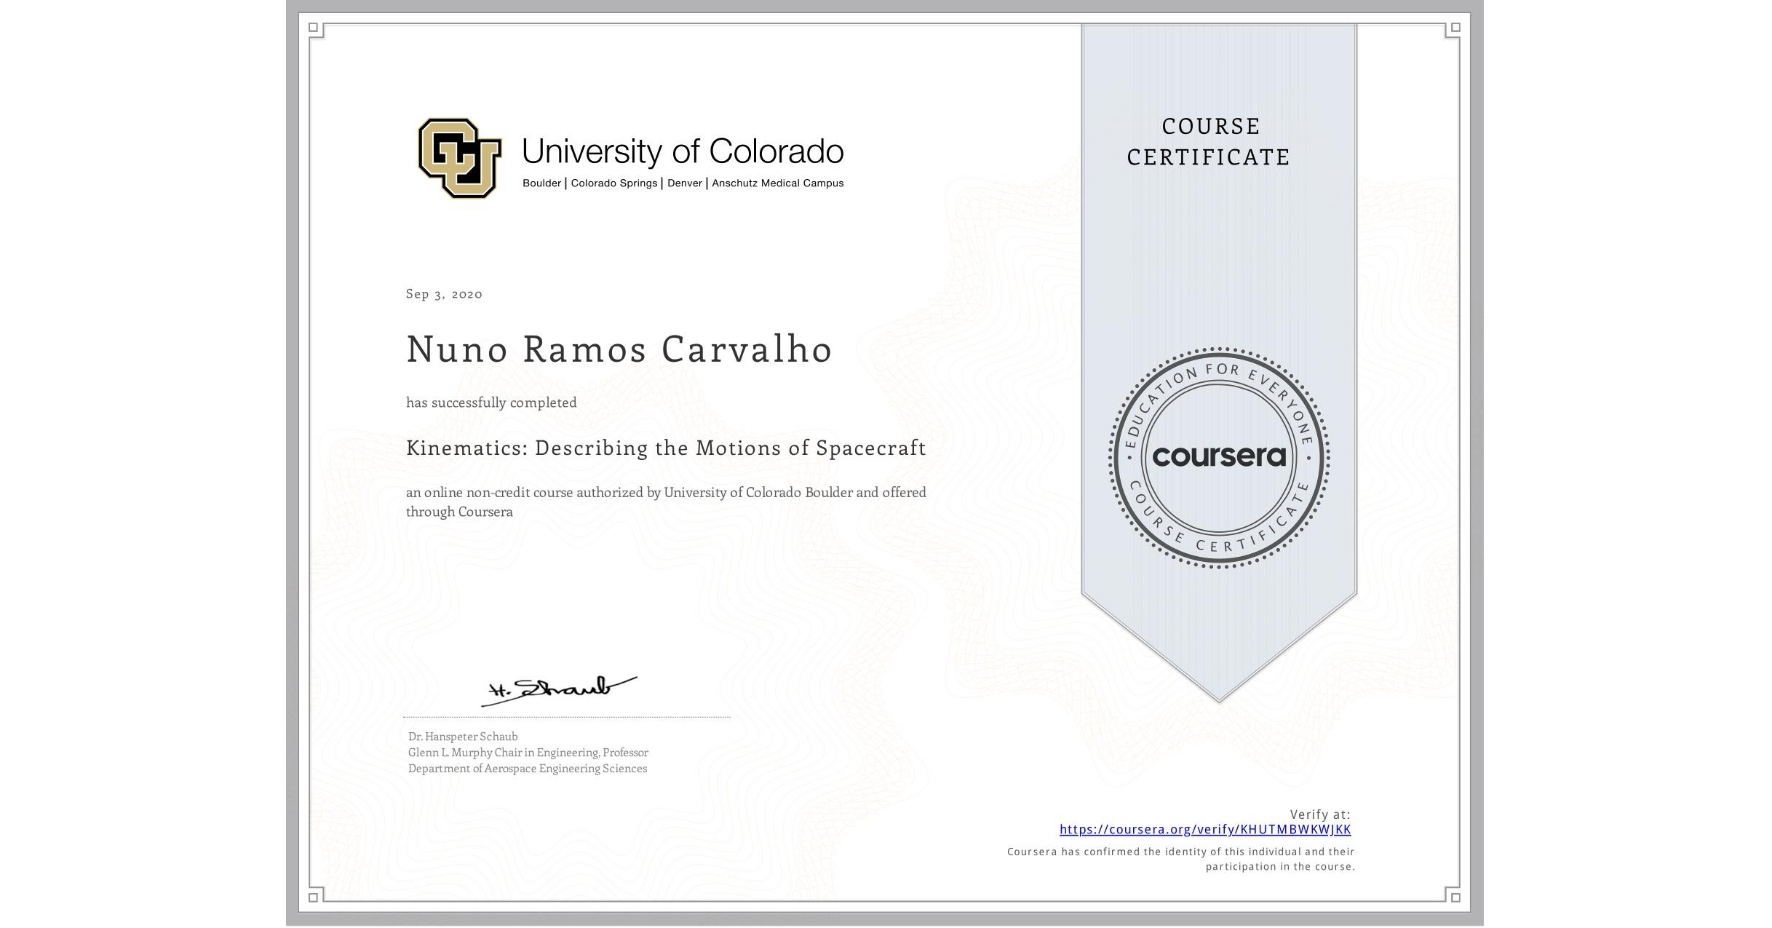 View certificate for Nuno Ramos Carvalho, Kinematics: Describing the Motions of Spacecraft, an online non-credit course authorized by University of Colorado Boulder and offered through Coursera